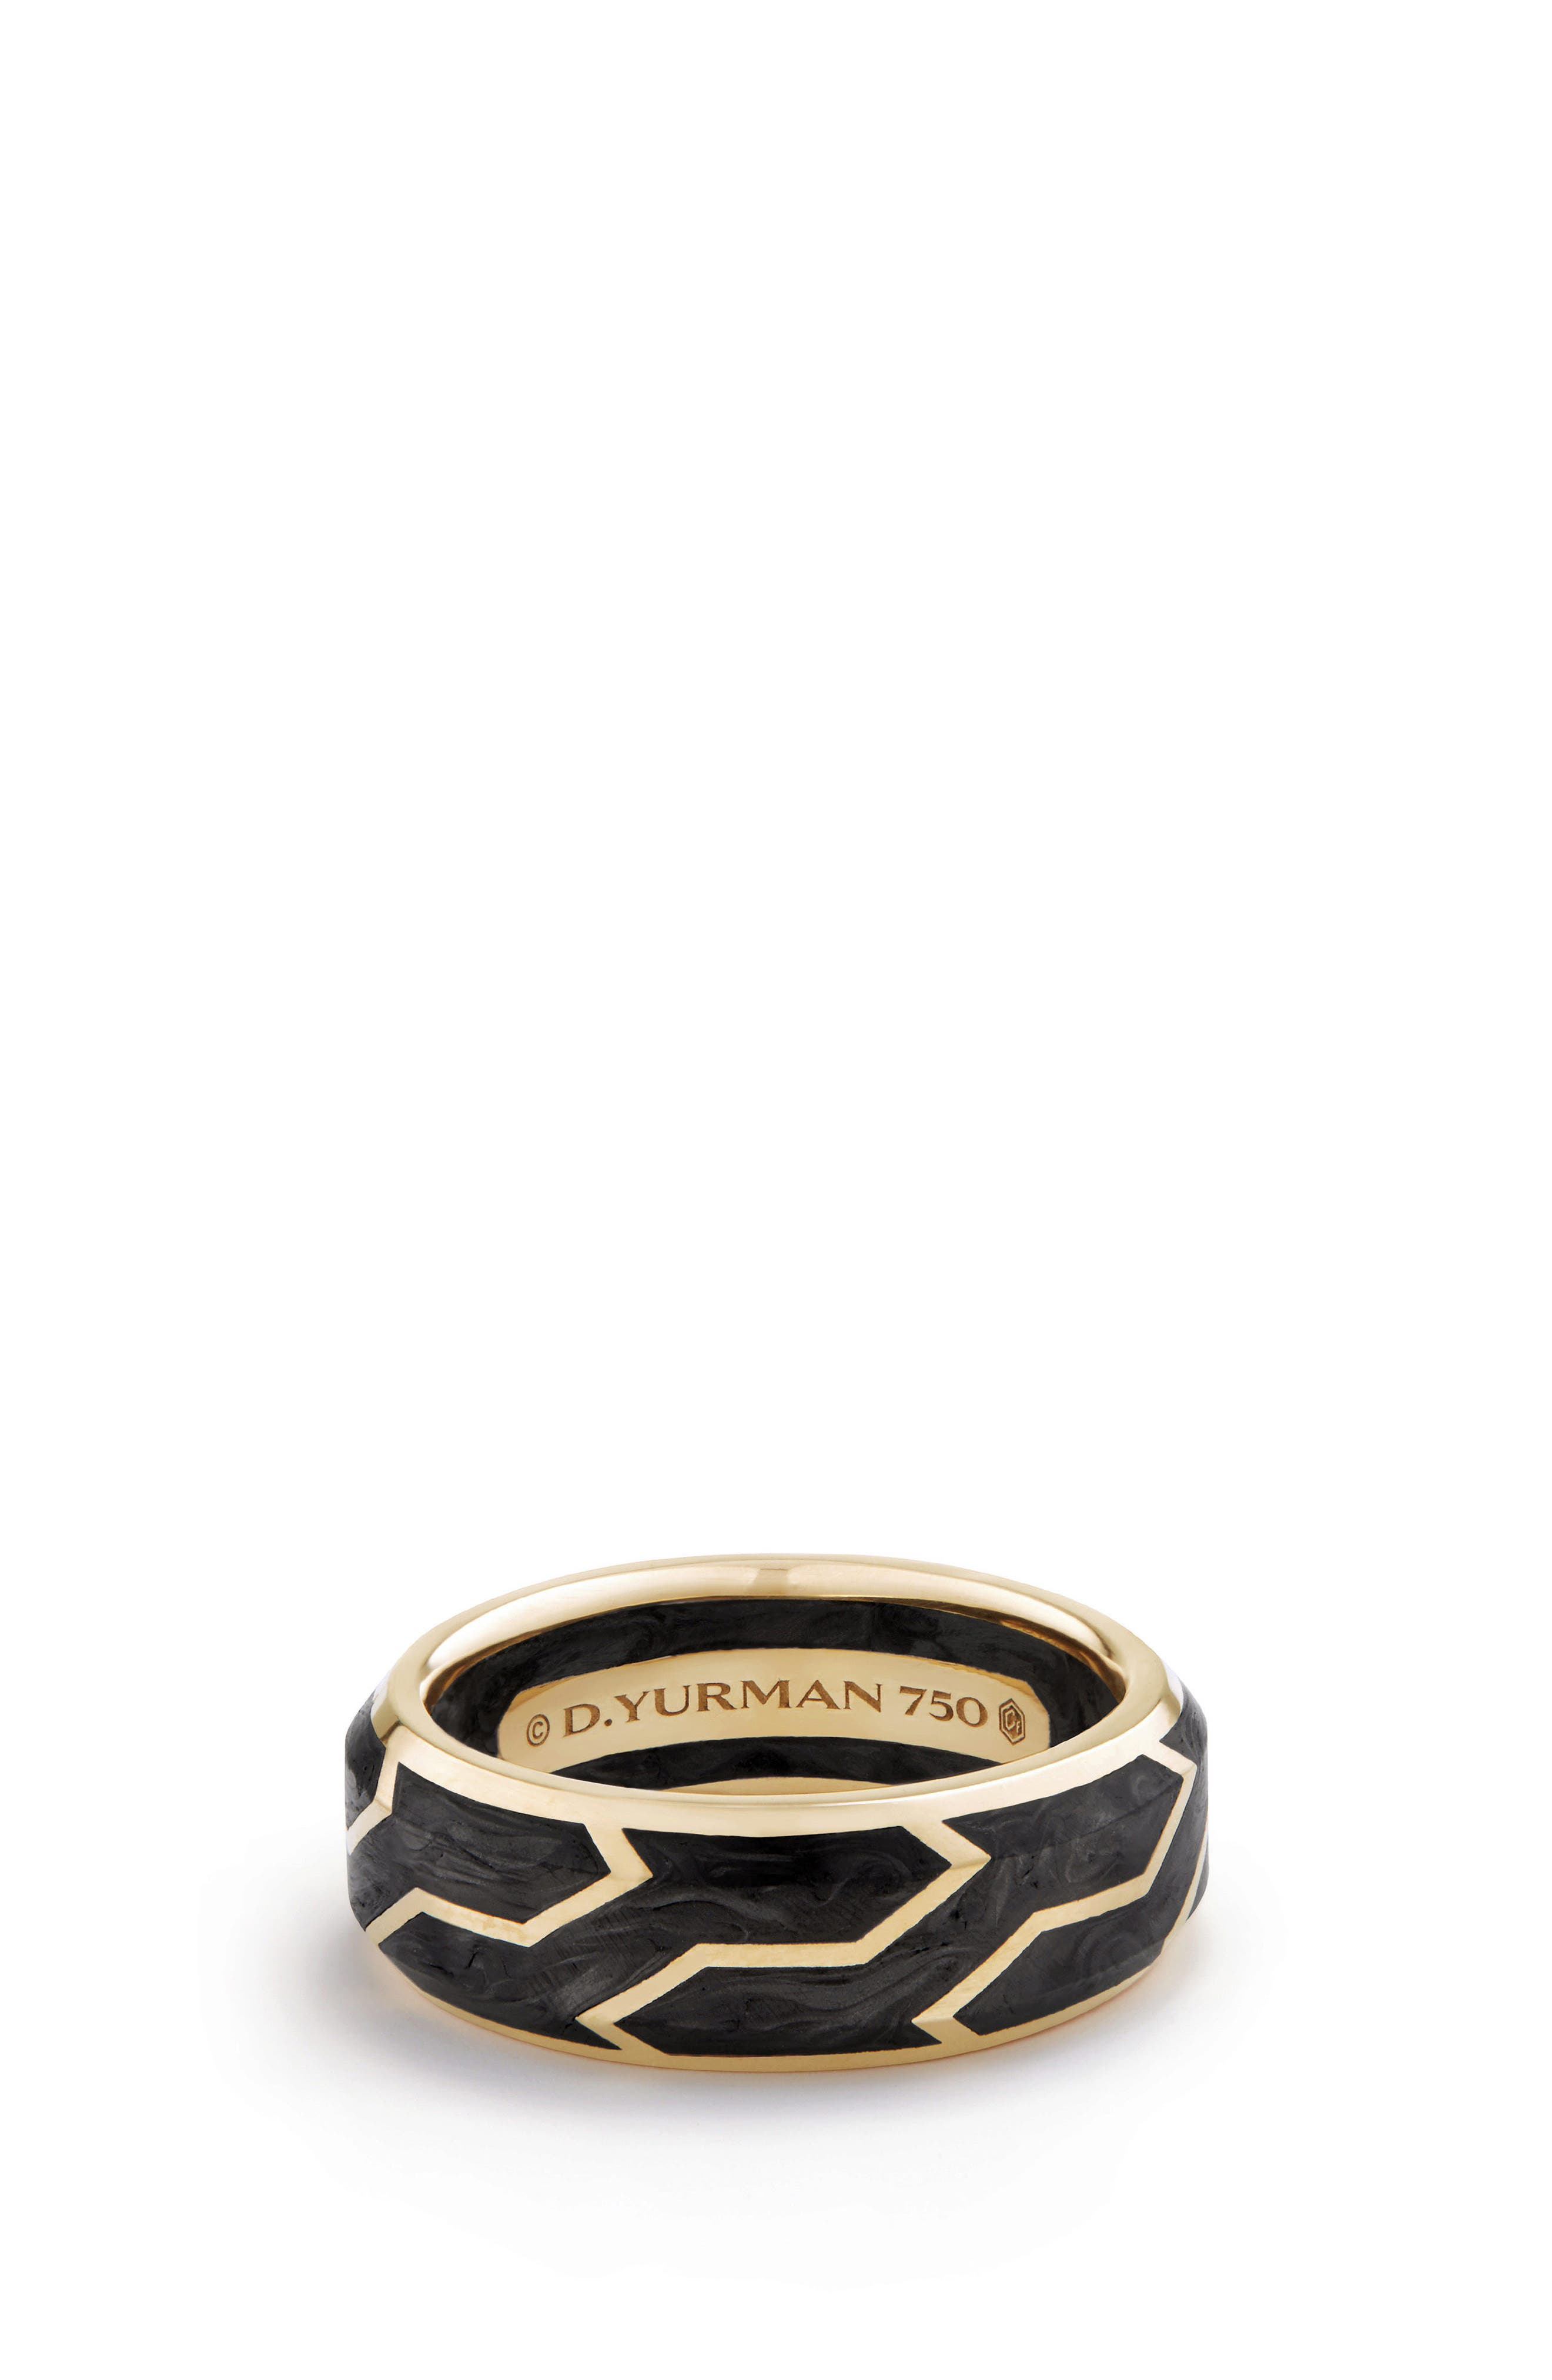 Forged Carbon Band Ring in 18K Gold, 8.5mm,                         Main,                         color, 020